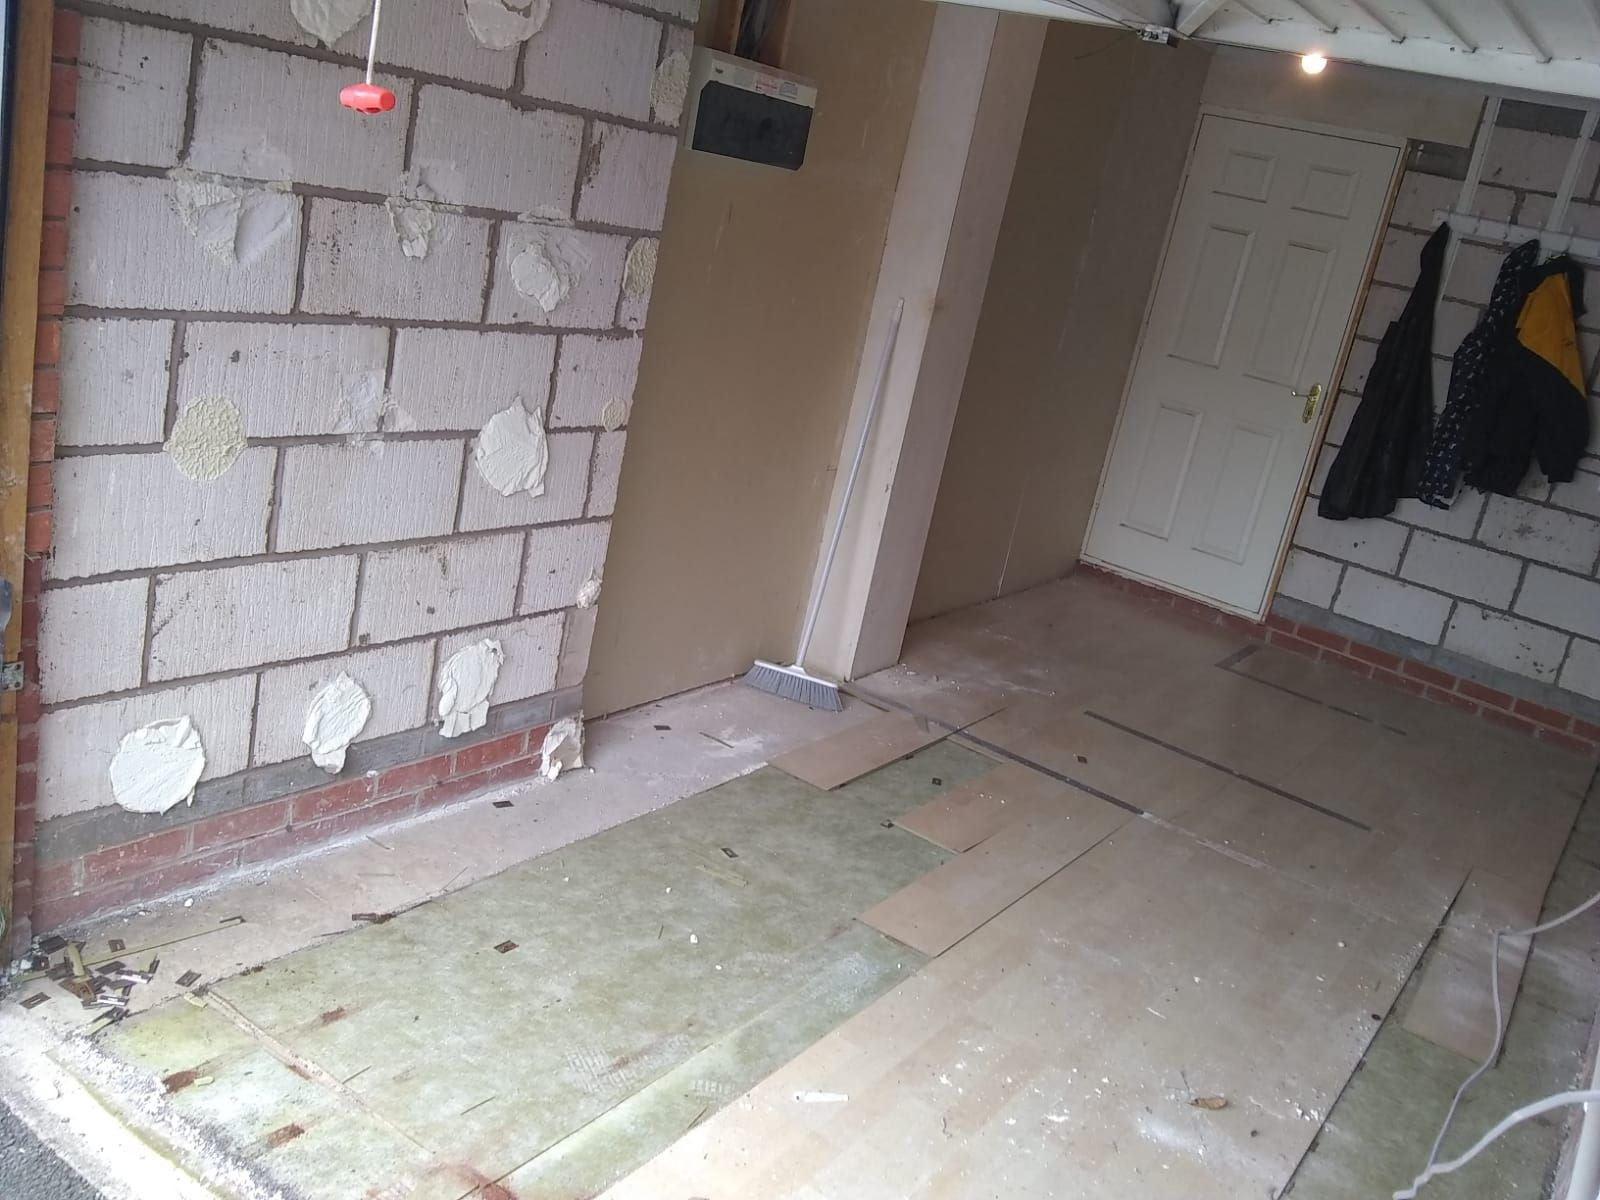 Pin By Rebecca Bailey On Extention 6 Hunt Way Flooring Tile Floor Tiles